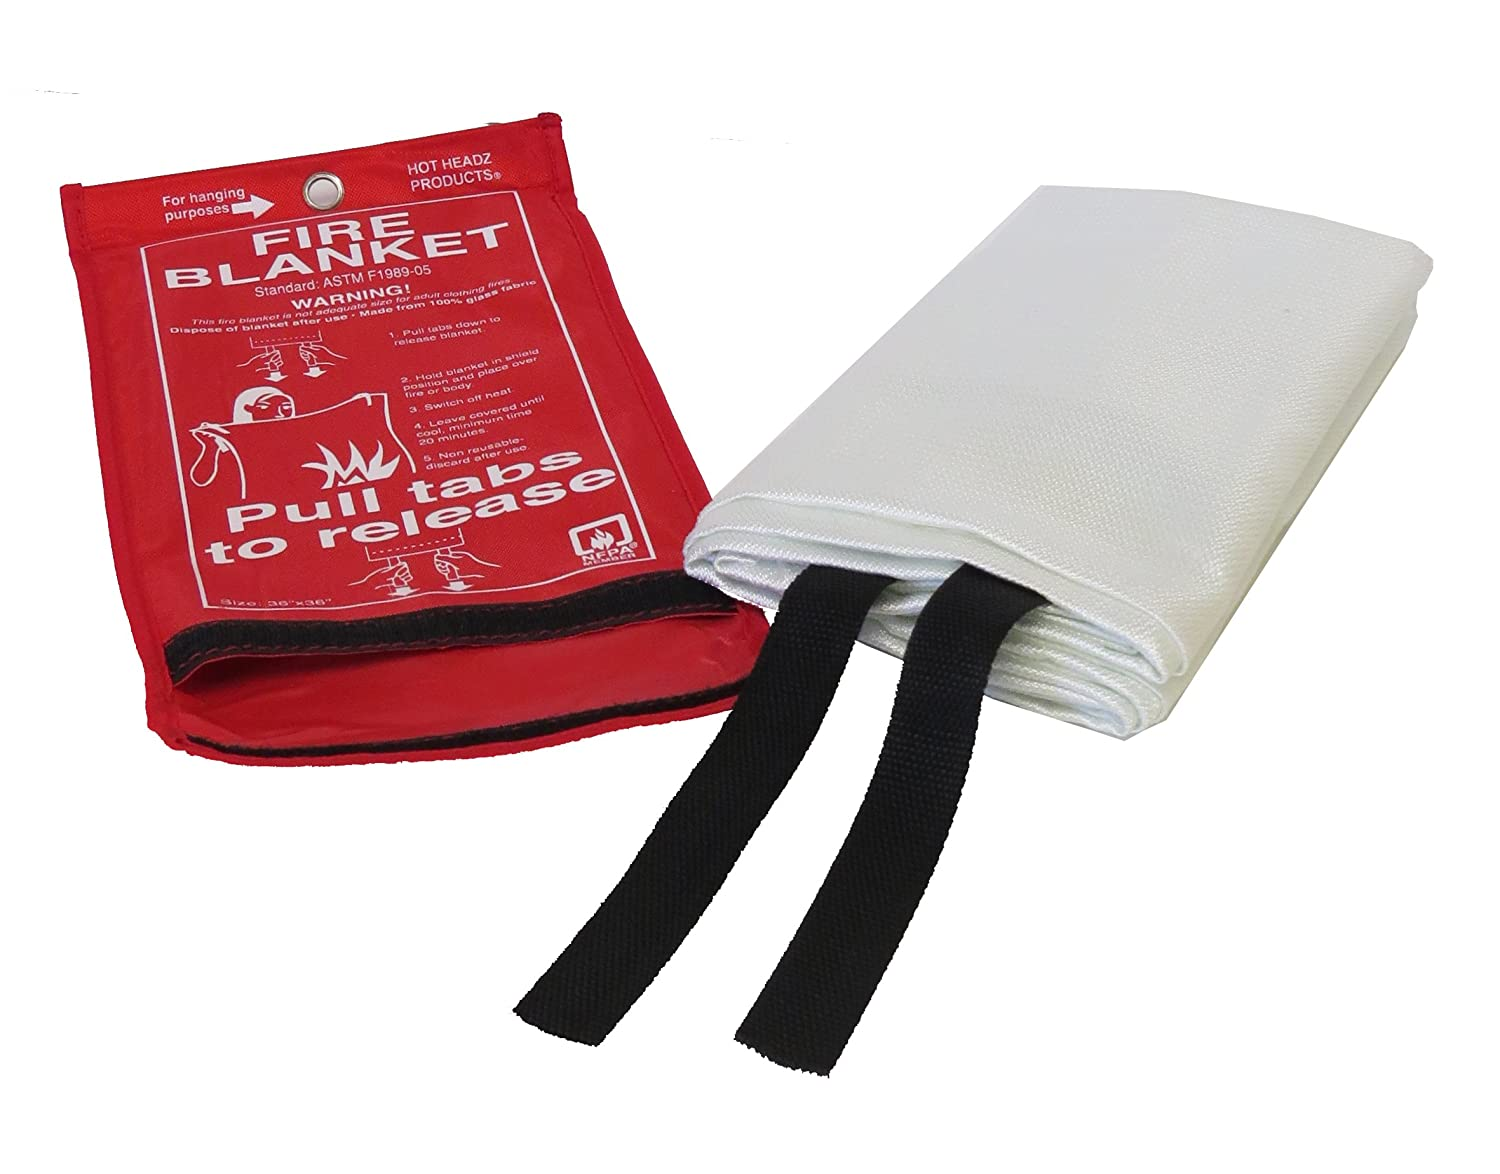 Amazon.com : Hot Headz Fire Blanket We keep a few of these scattered around our boat and RV to smother out a fire should it occur.